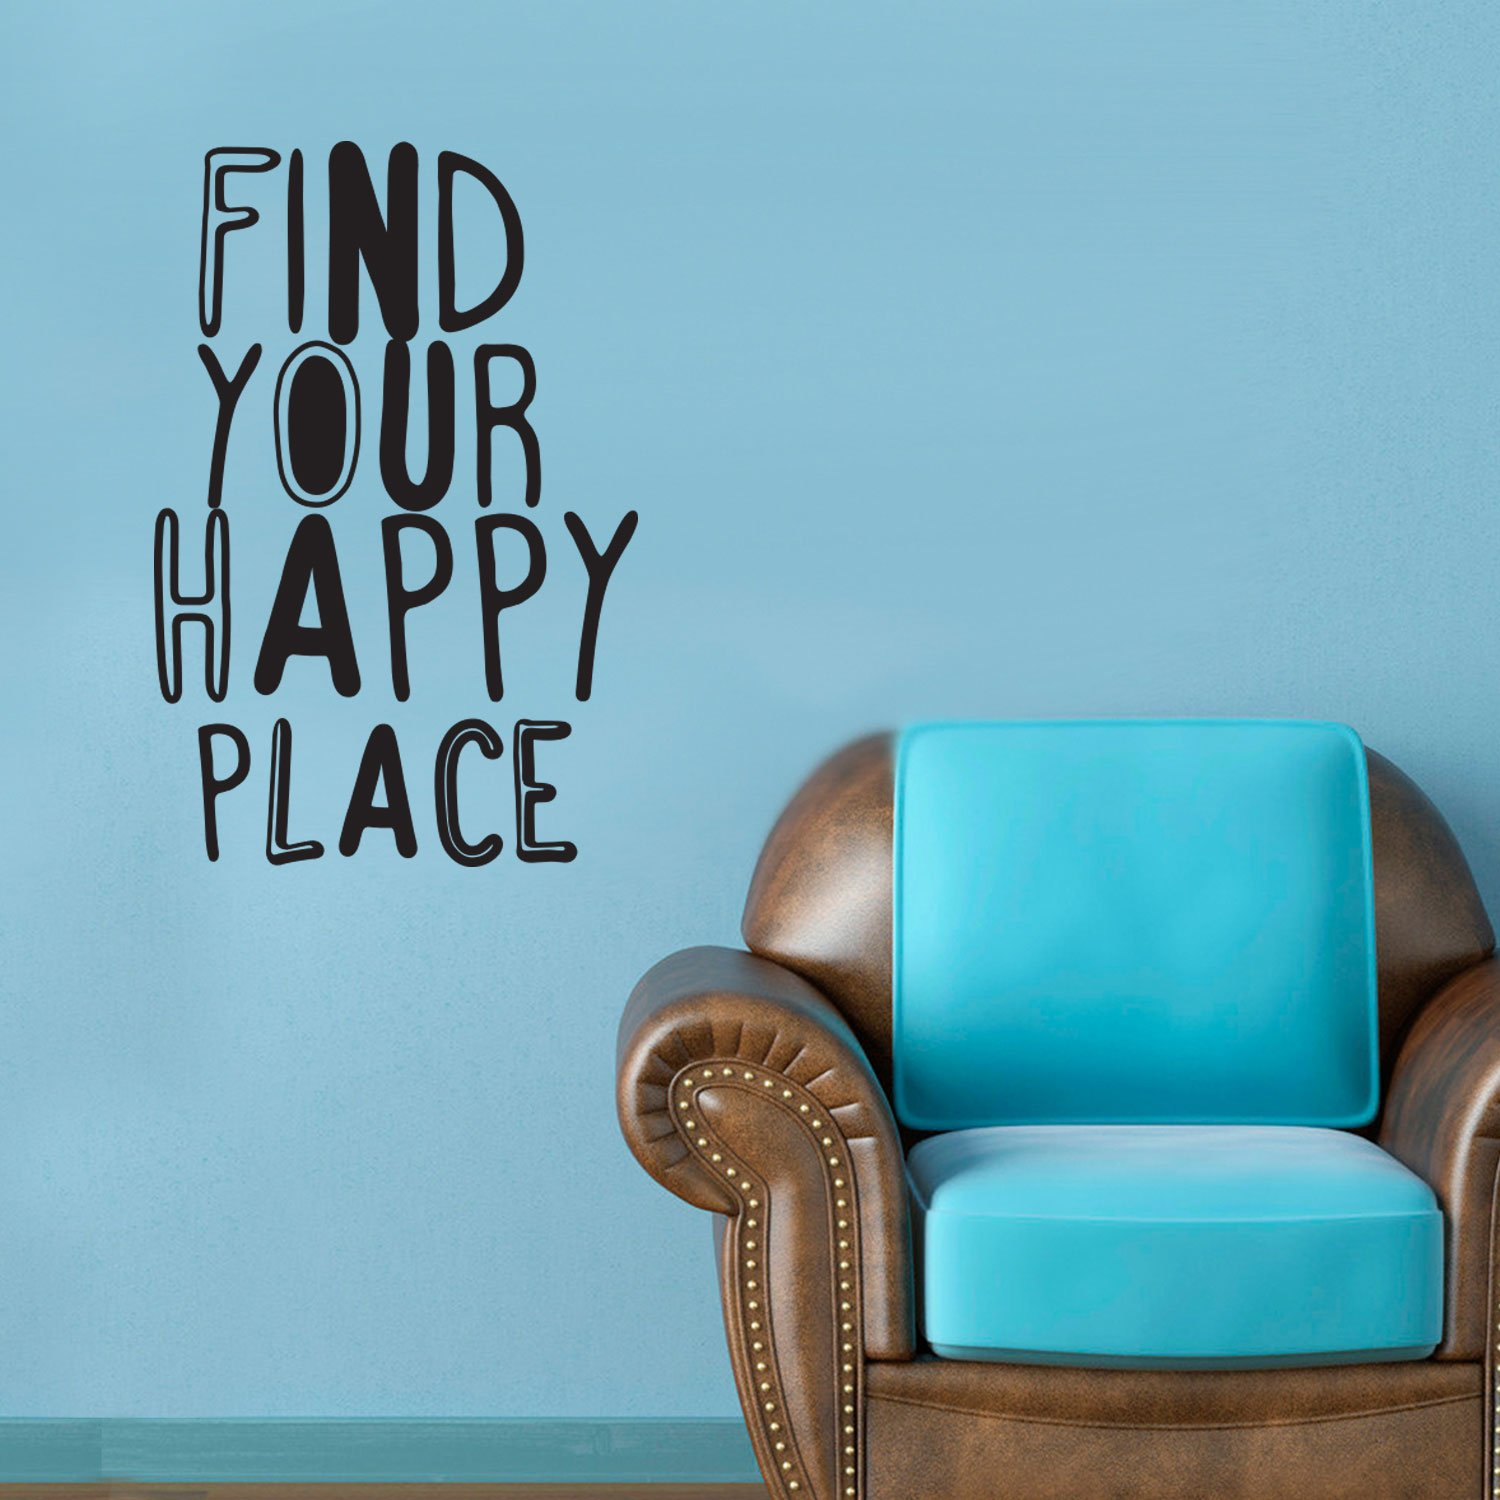 Find your happy place inspirational quotes wall art vinyl decal 30 x 20 decoration vinyl sticker living room motivational wall art decal life